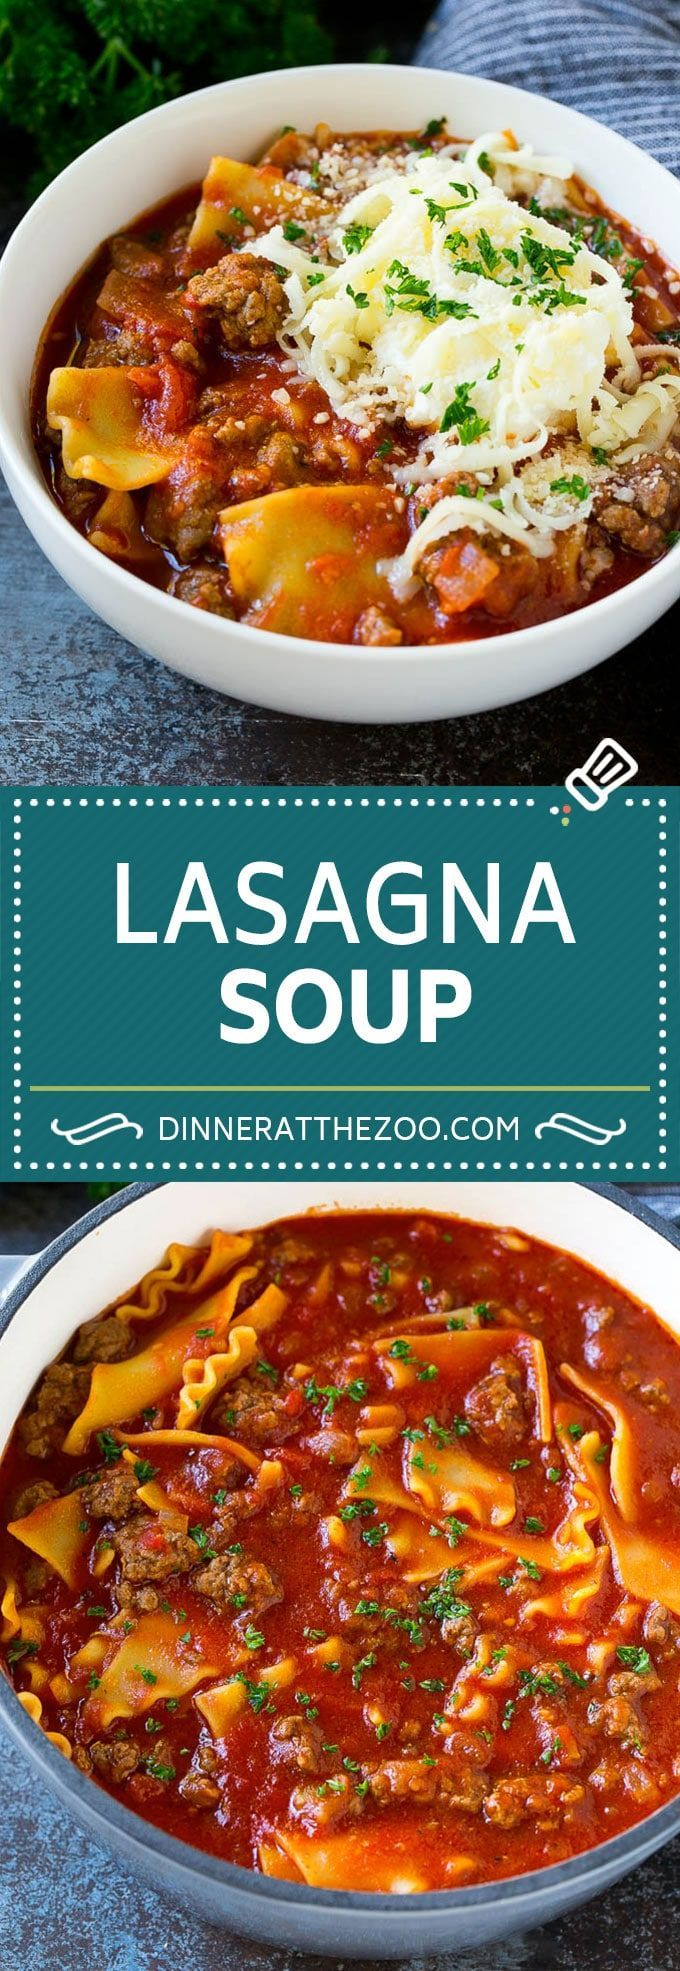 Lasagna Soup Recipe Italian Soup Ground Beef Soup Lasagna Pasta Soup Beef Dinner Dinneratthezo Lasagna Soup Recipe Italian Soup Soup With Ground Beef